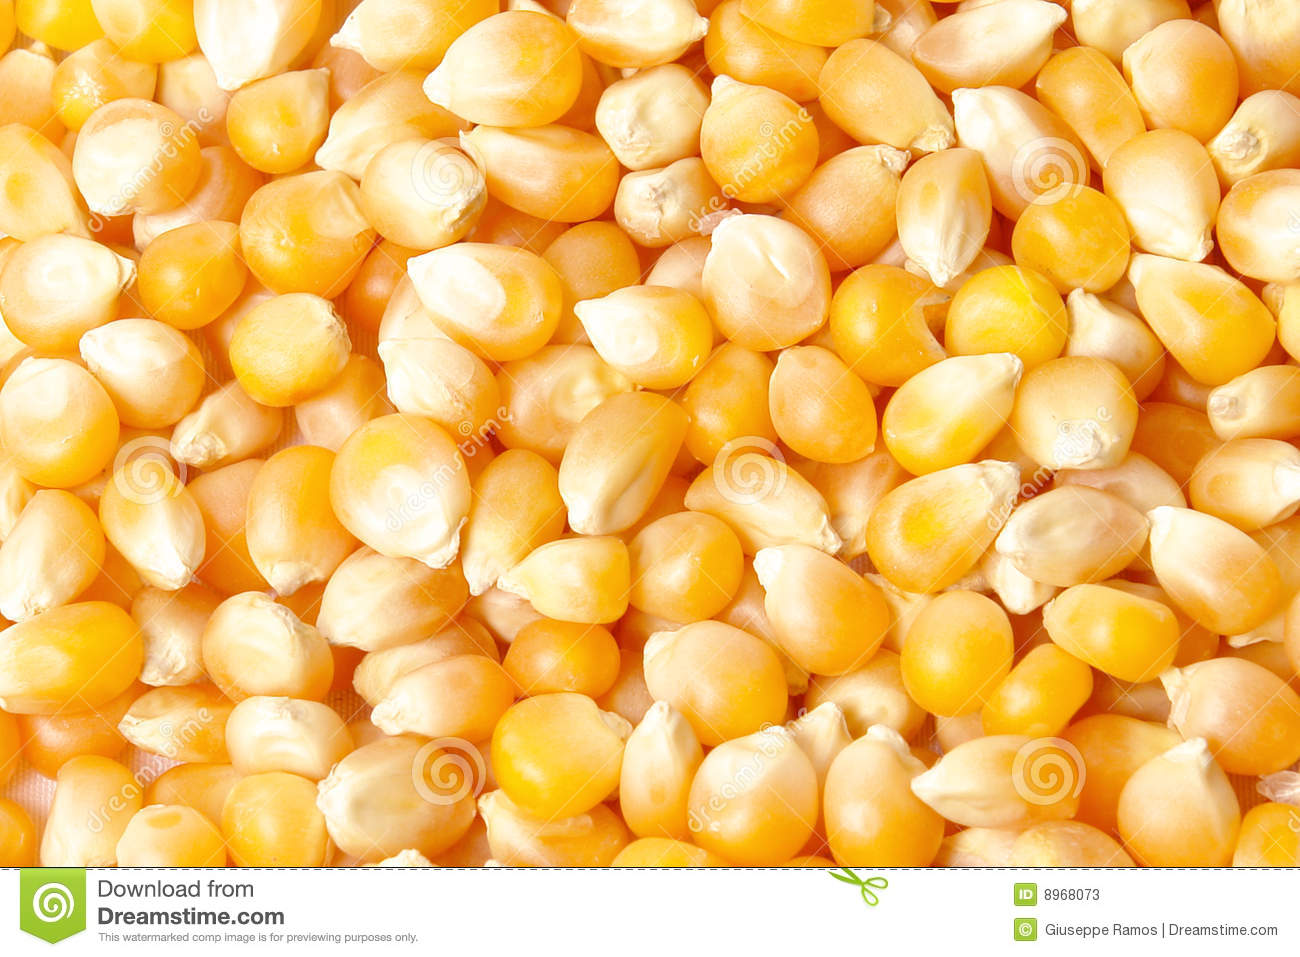 maize online dating Not to be confused with maze, maize wikivividly wiki as never seen before with video and photo galleries, discover something new today  dating from ca 1100 bc .